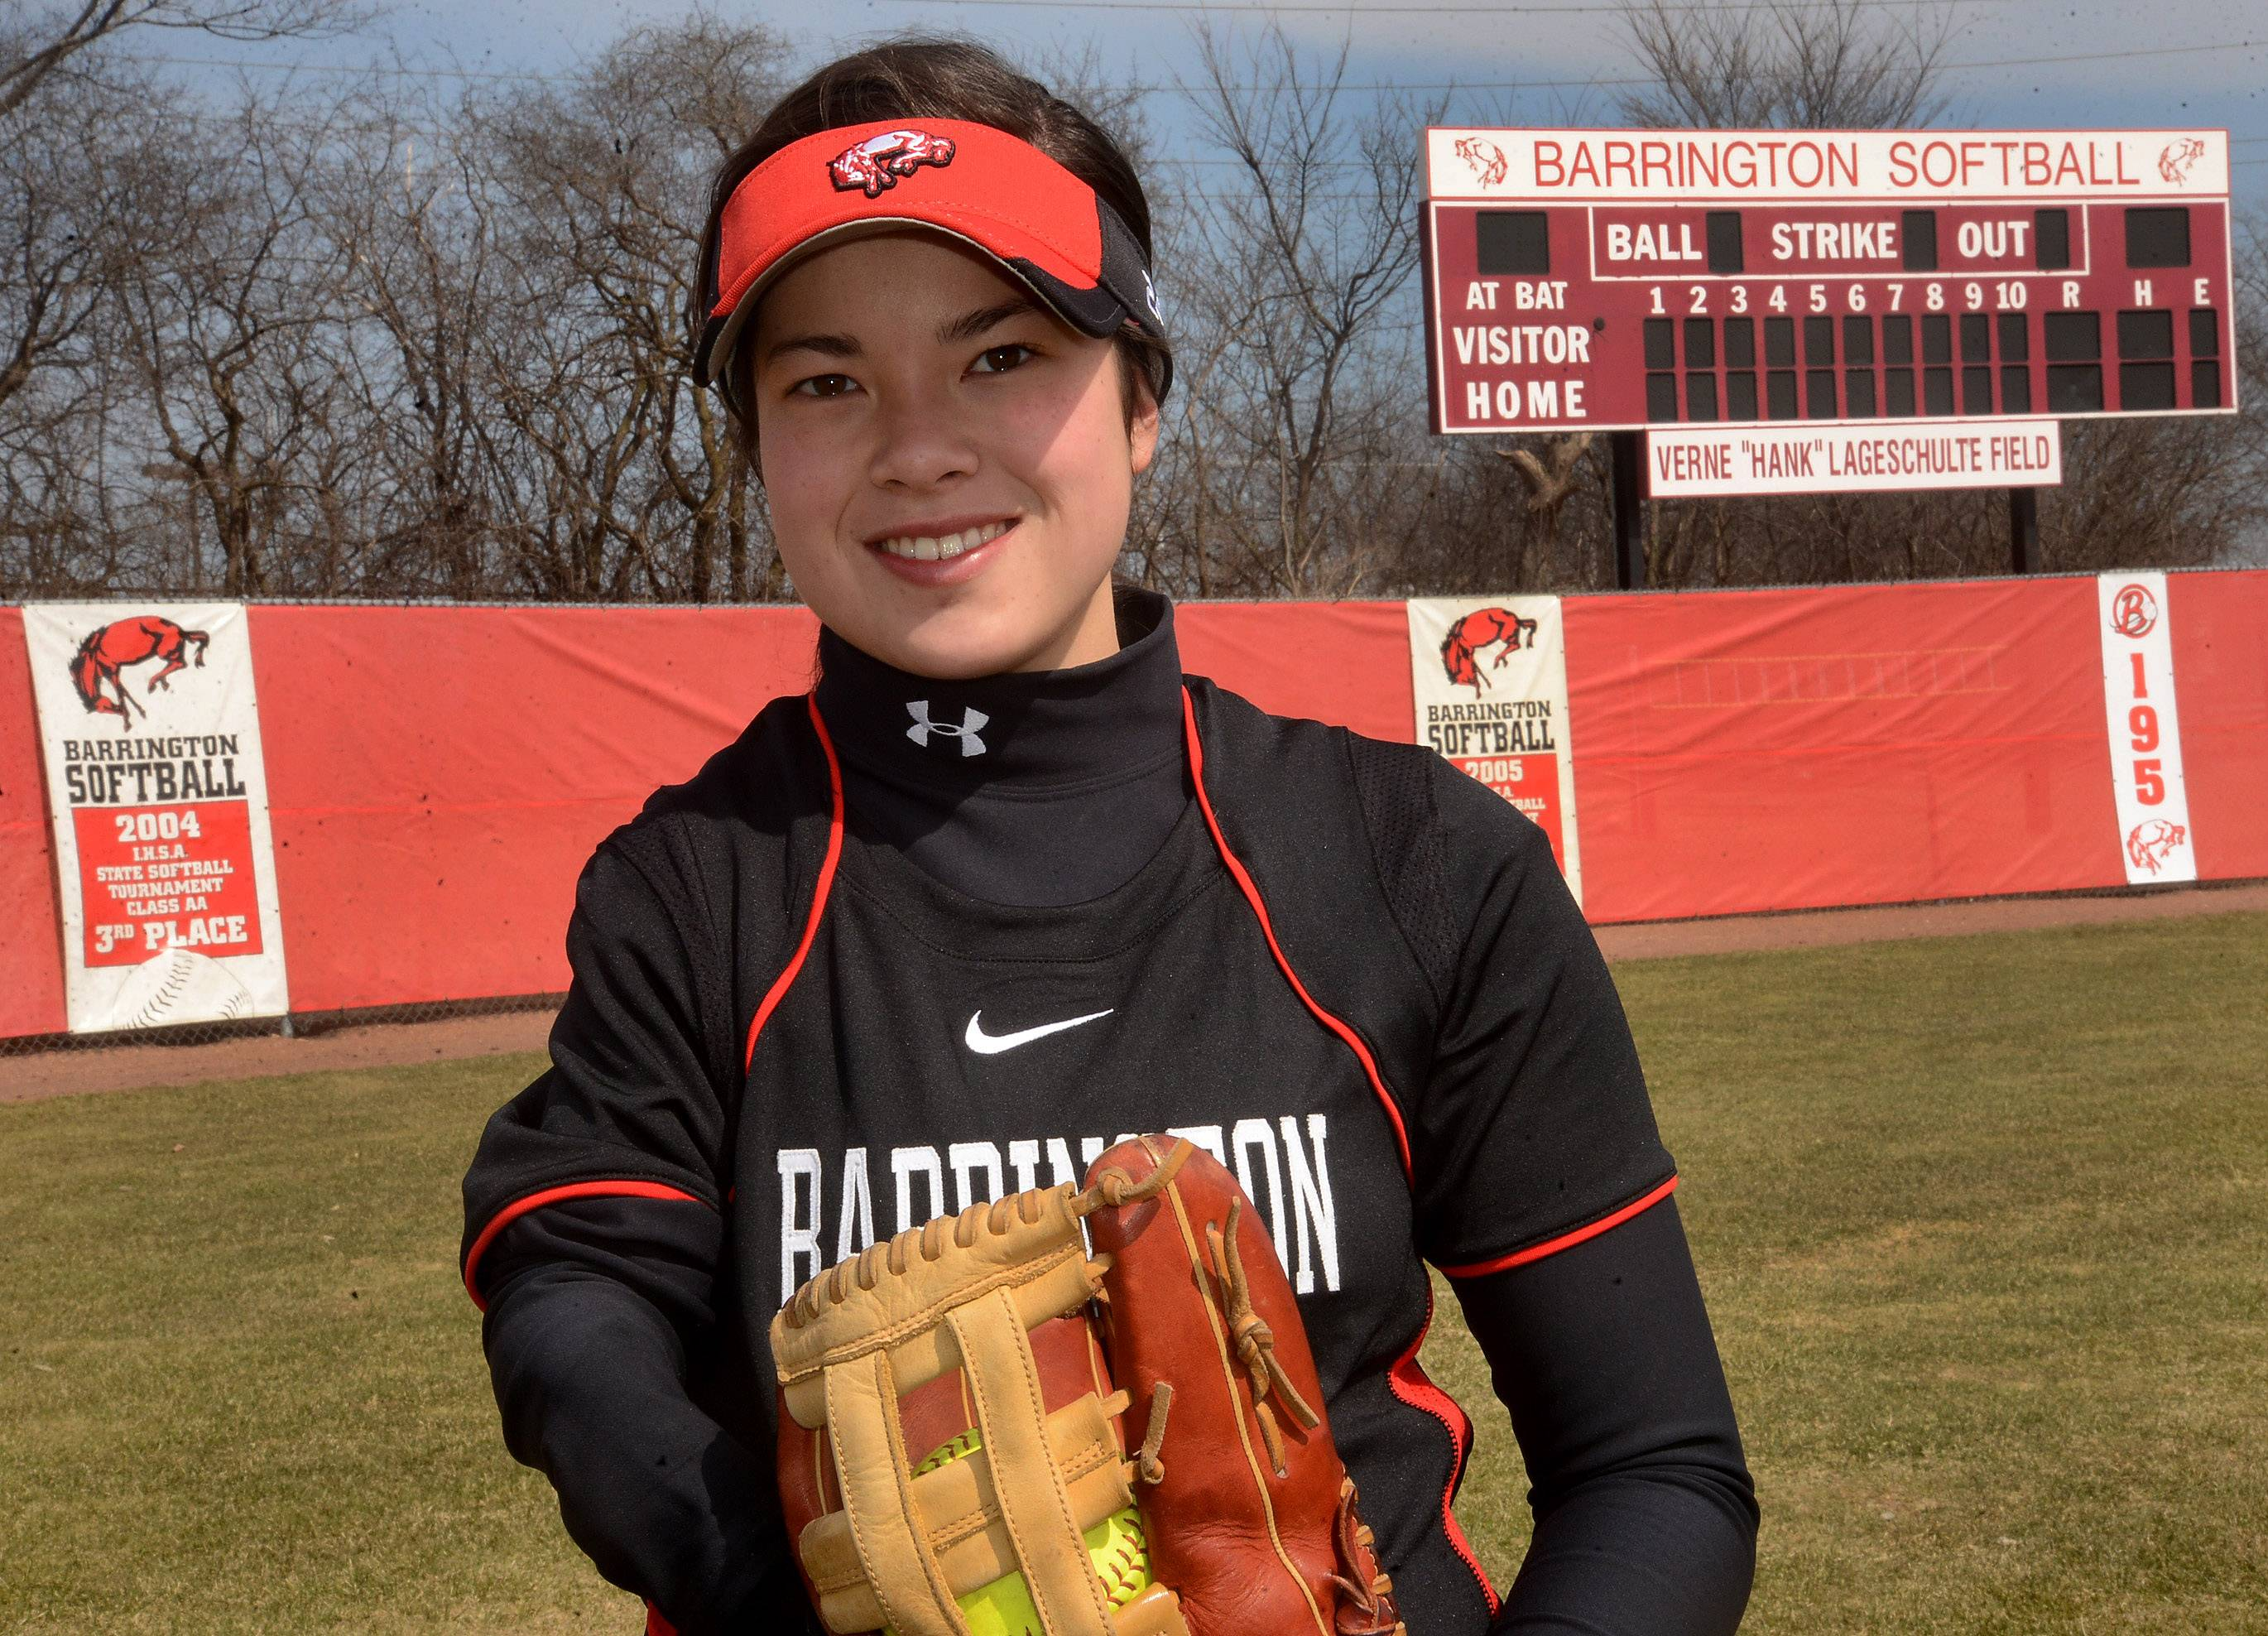 Barrington softball player Caitlin Inamoto succeeds using the Jim Abbott-style of catching the ball in the mitt, then taking the mitt off and throwing the ball with the same hand.